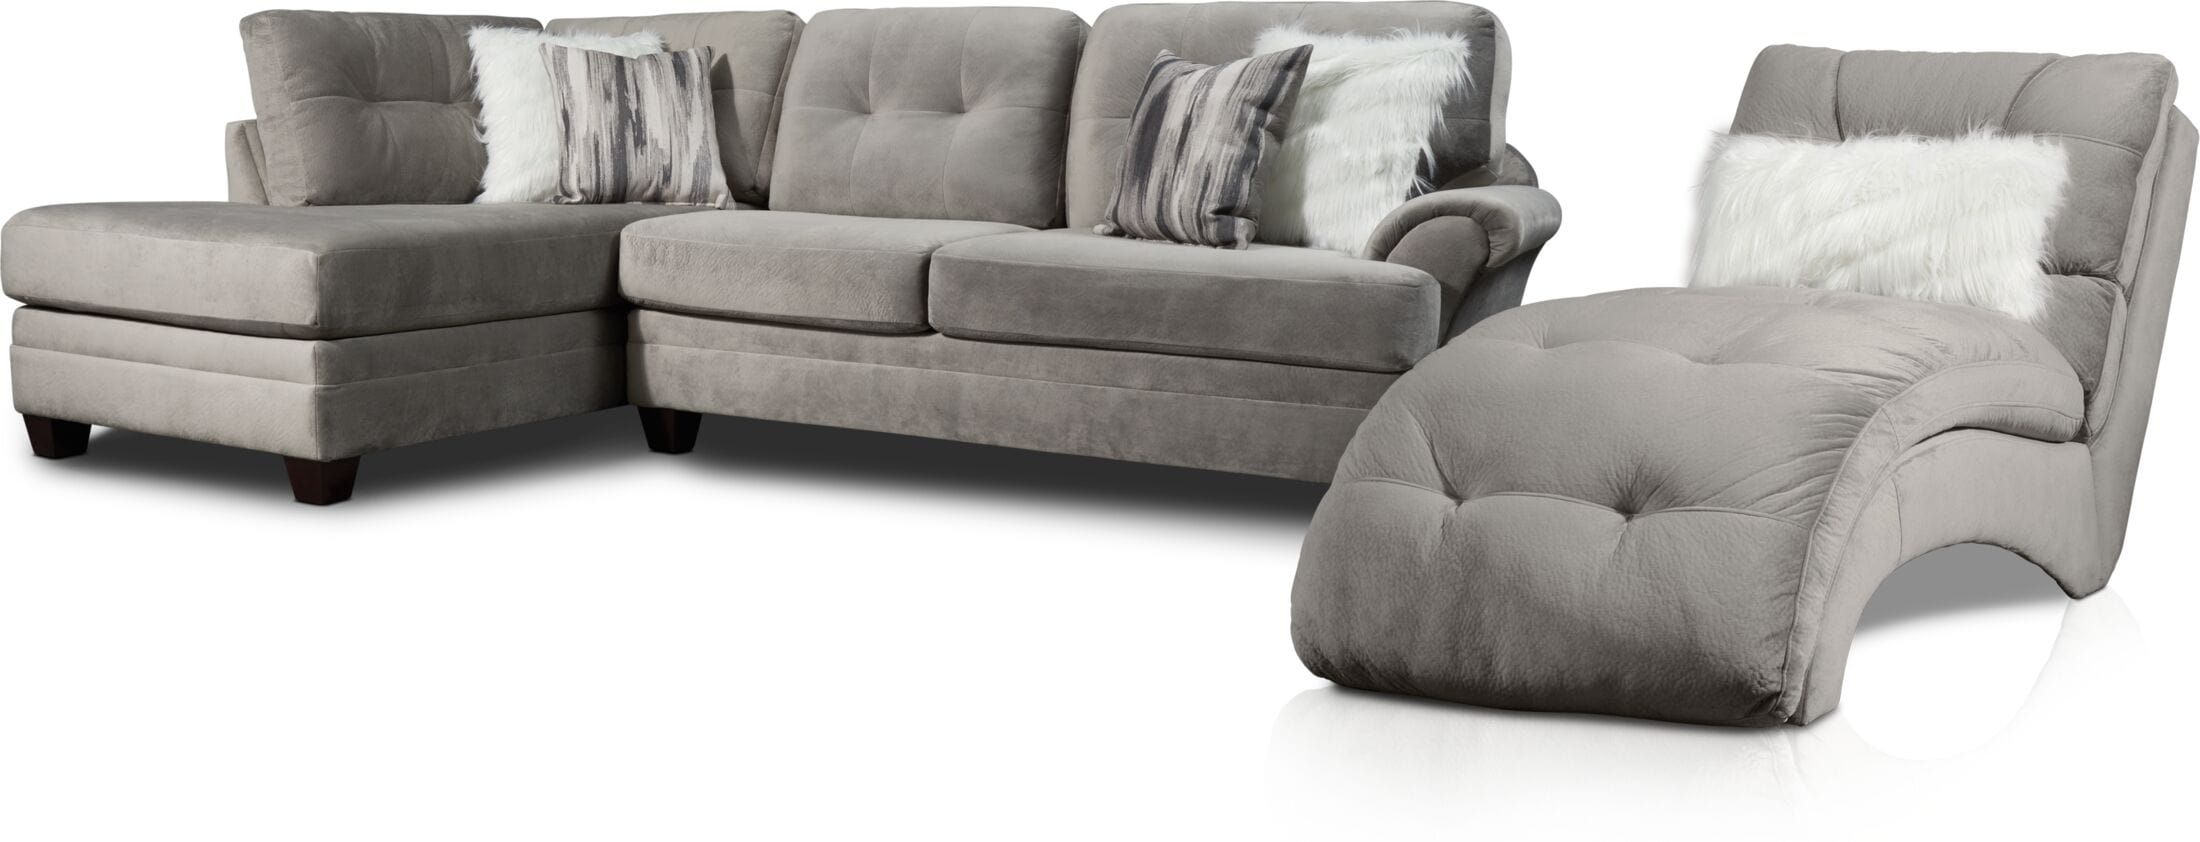 Living Room Furniture - Cordelle 2-Piece Sectional and Chaise